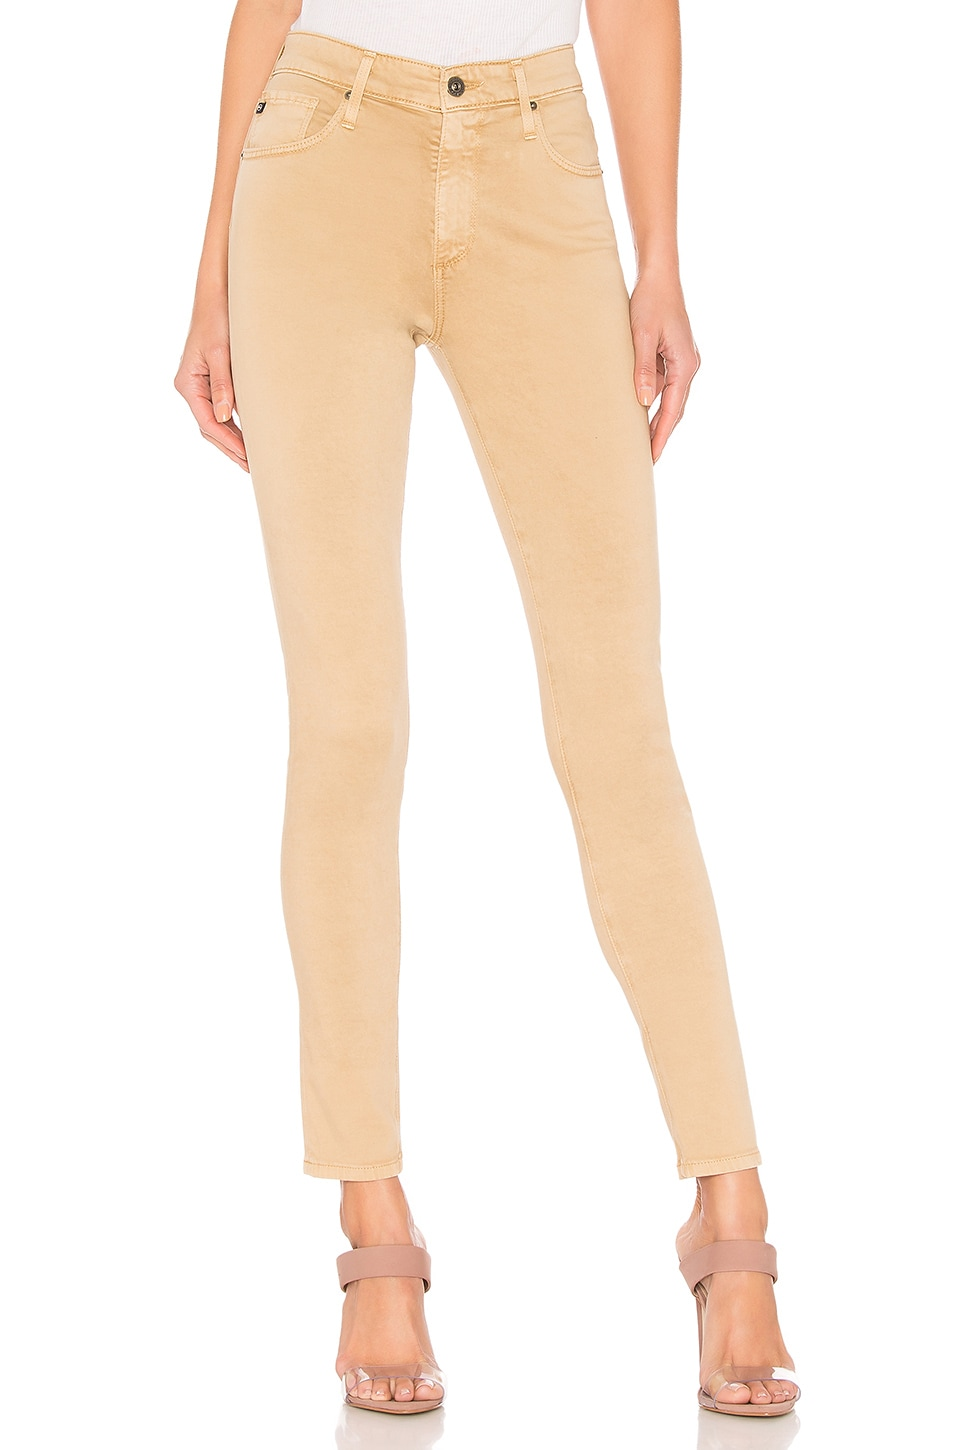 AG Adriano Goldschmied Farrah Skinny Ankle in Sulfur Toasted Almond